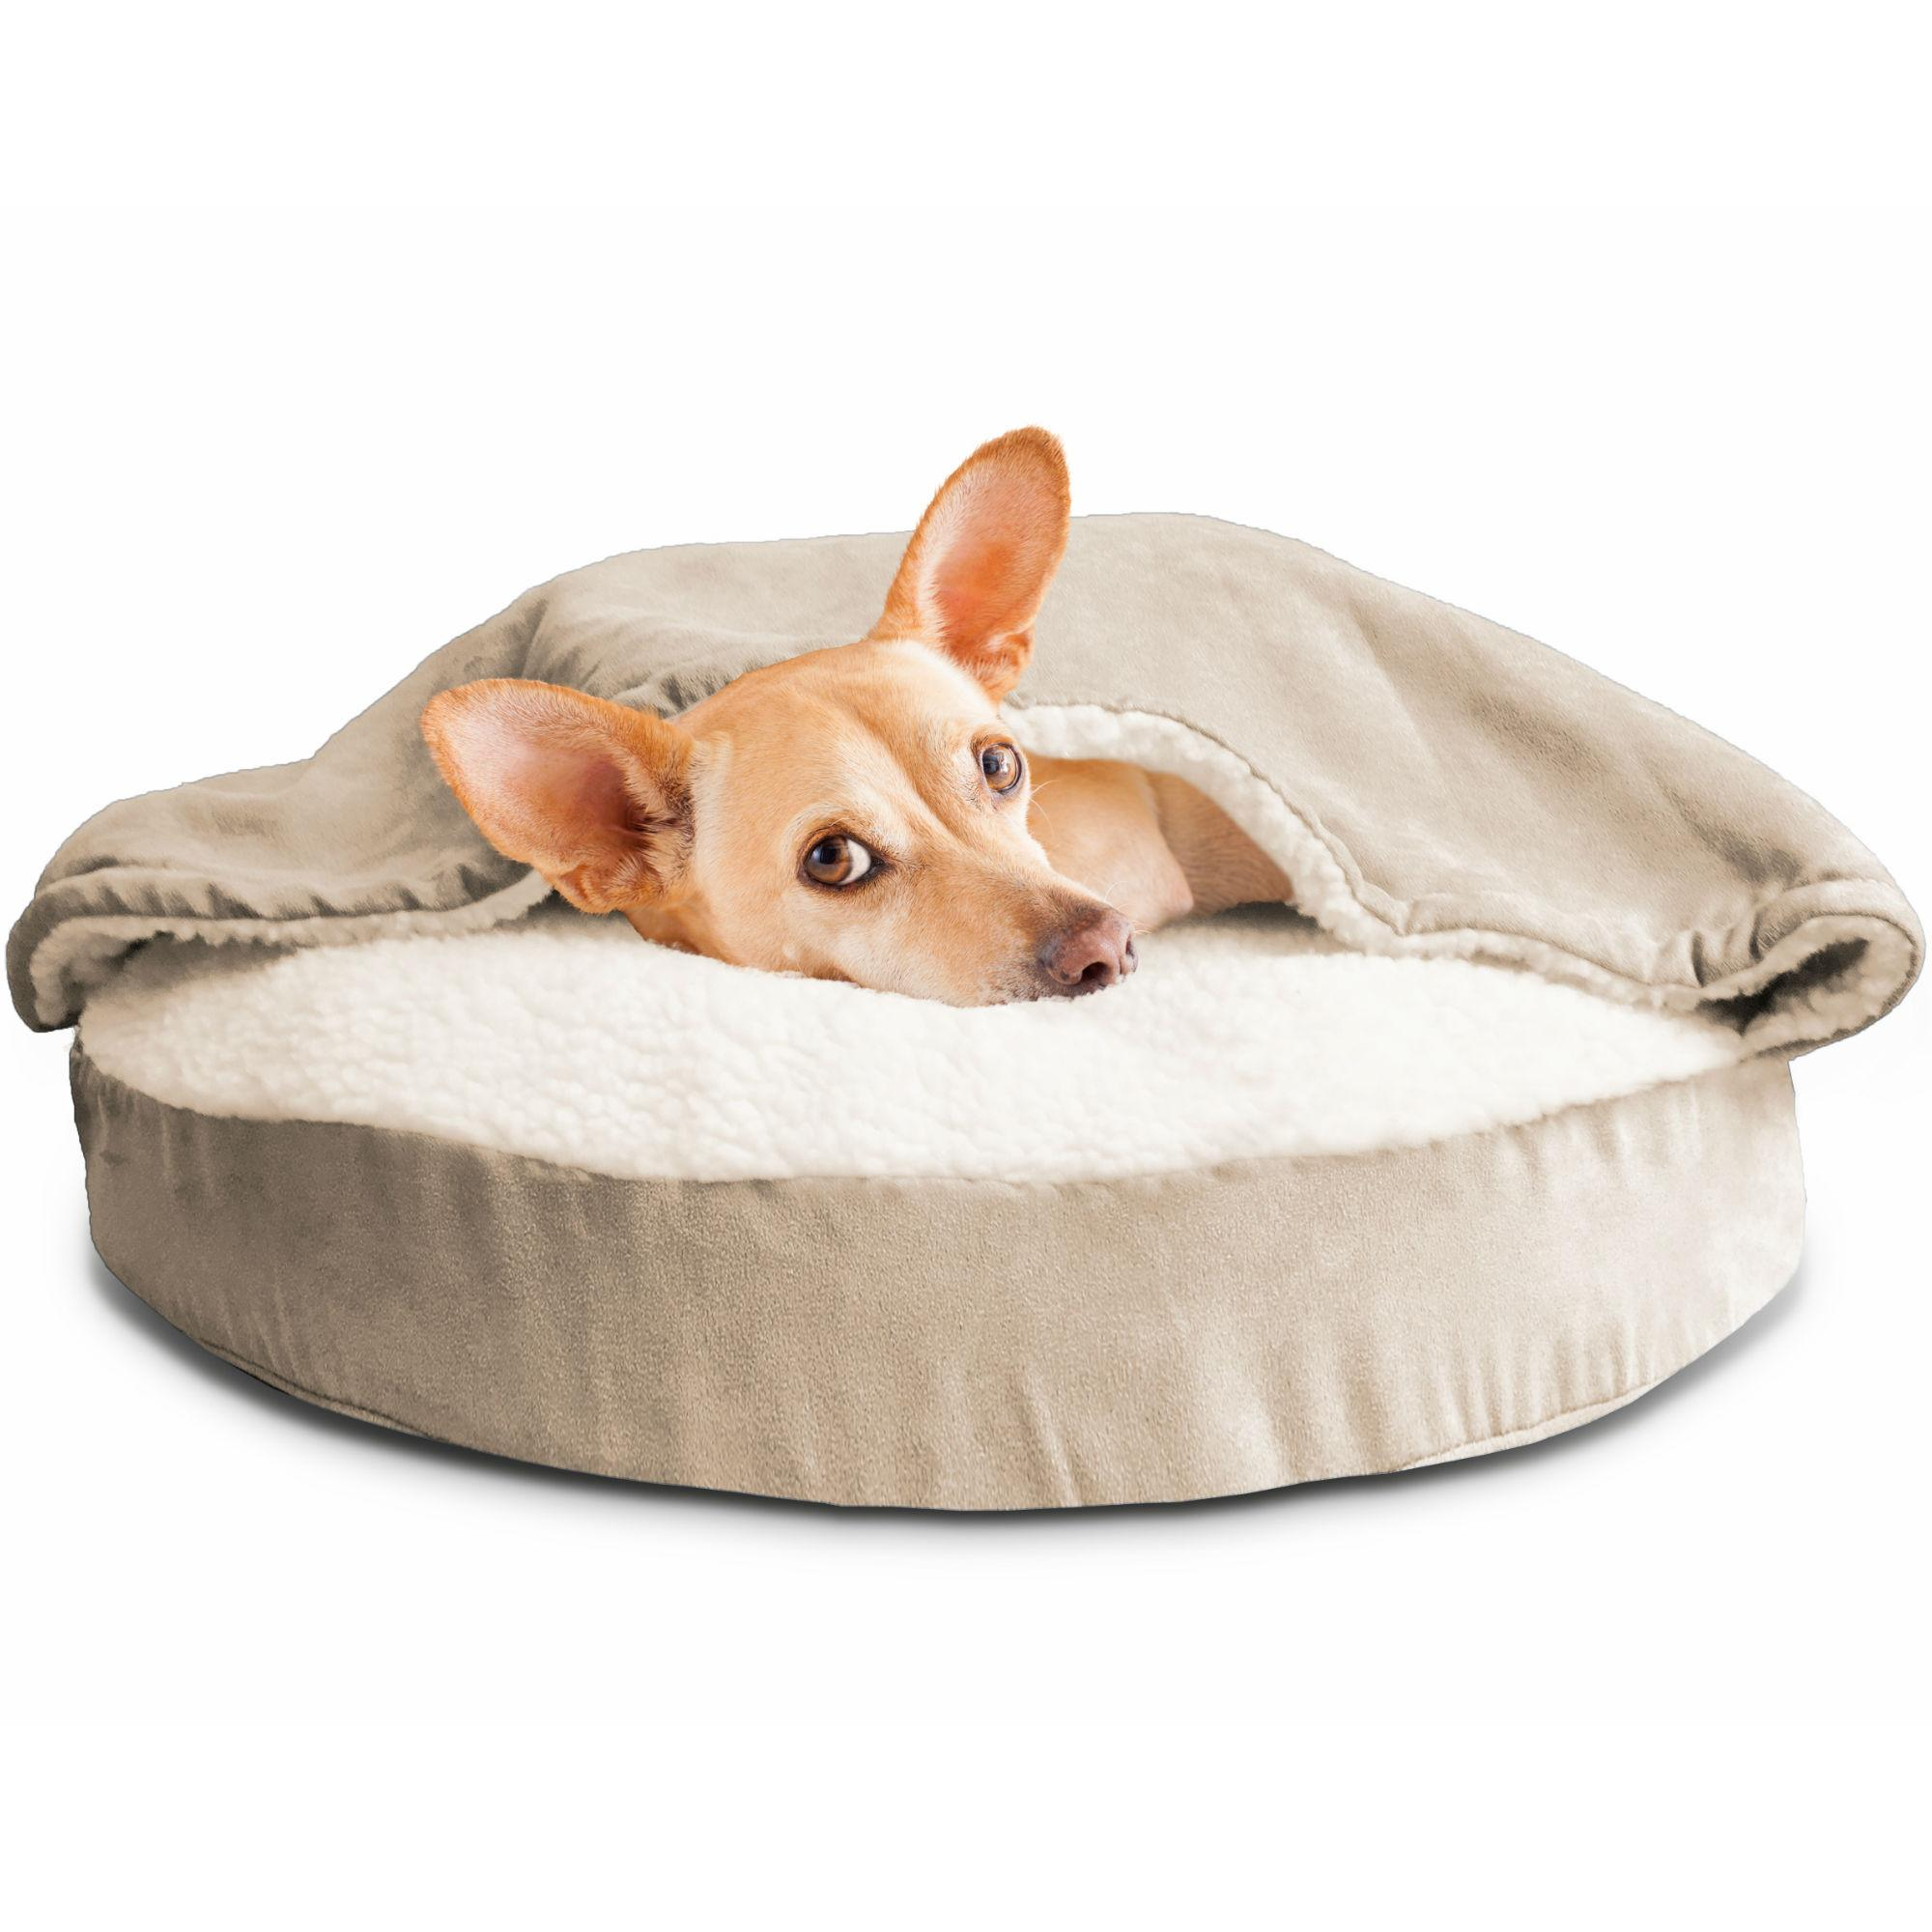 Furhaven Faux Sheepskin Snuggery Pet Bed - Cream